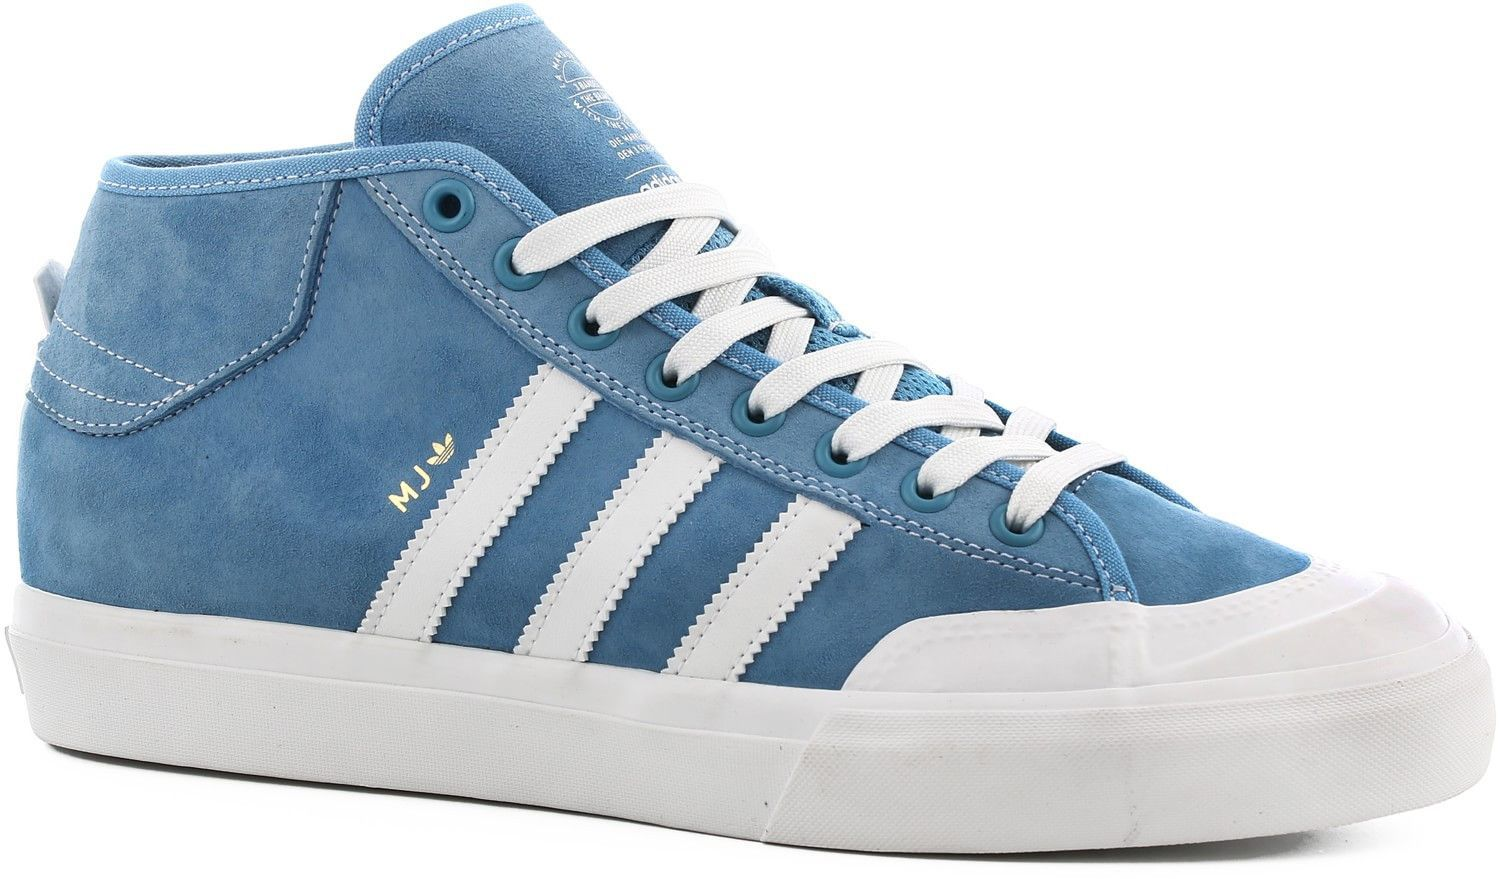 san francisco e4e19 2301b Adidas Matchcourt Mid - Light Blue Neo White Gold